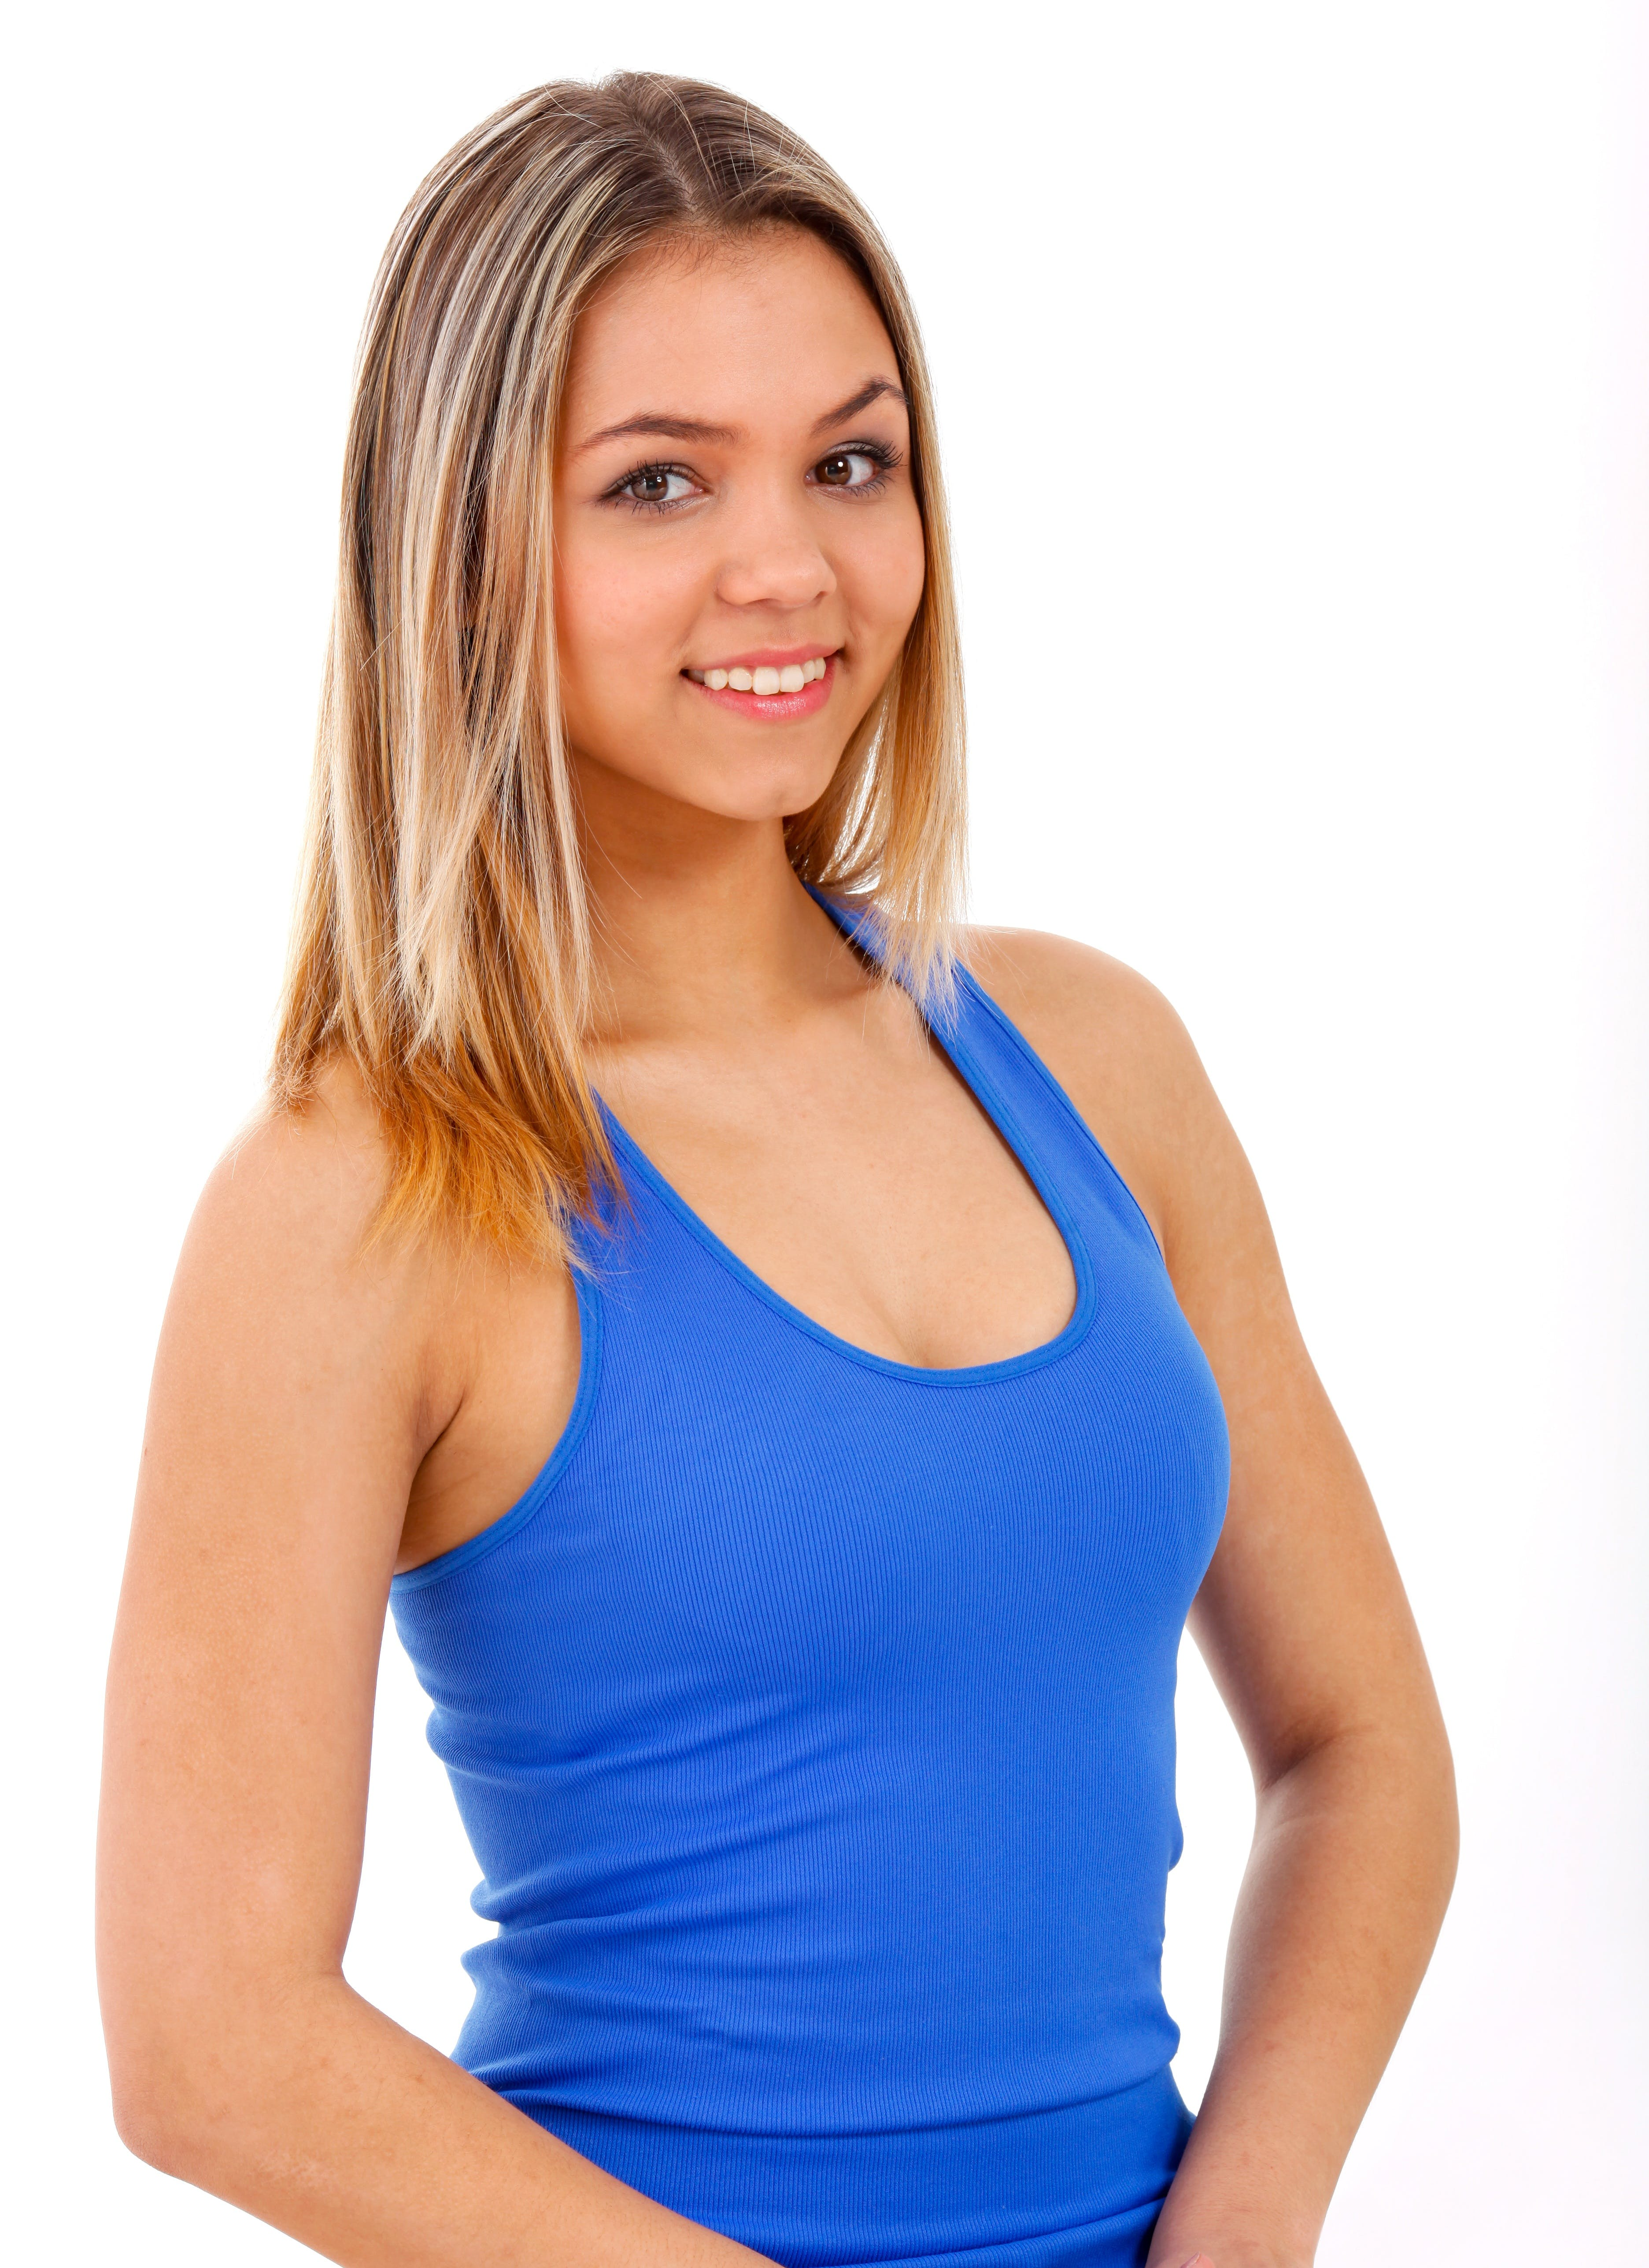 Woman Smiling While Wearing Blue Tank Top